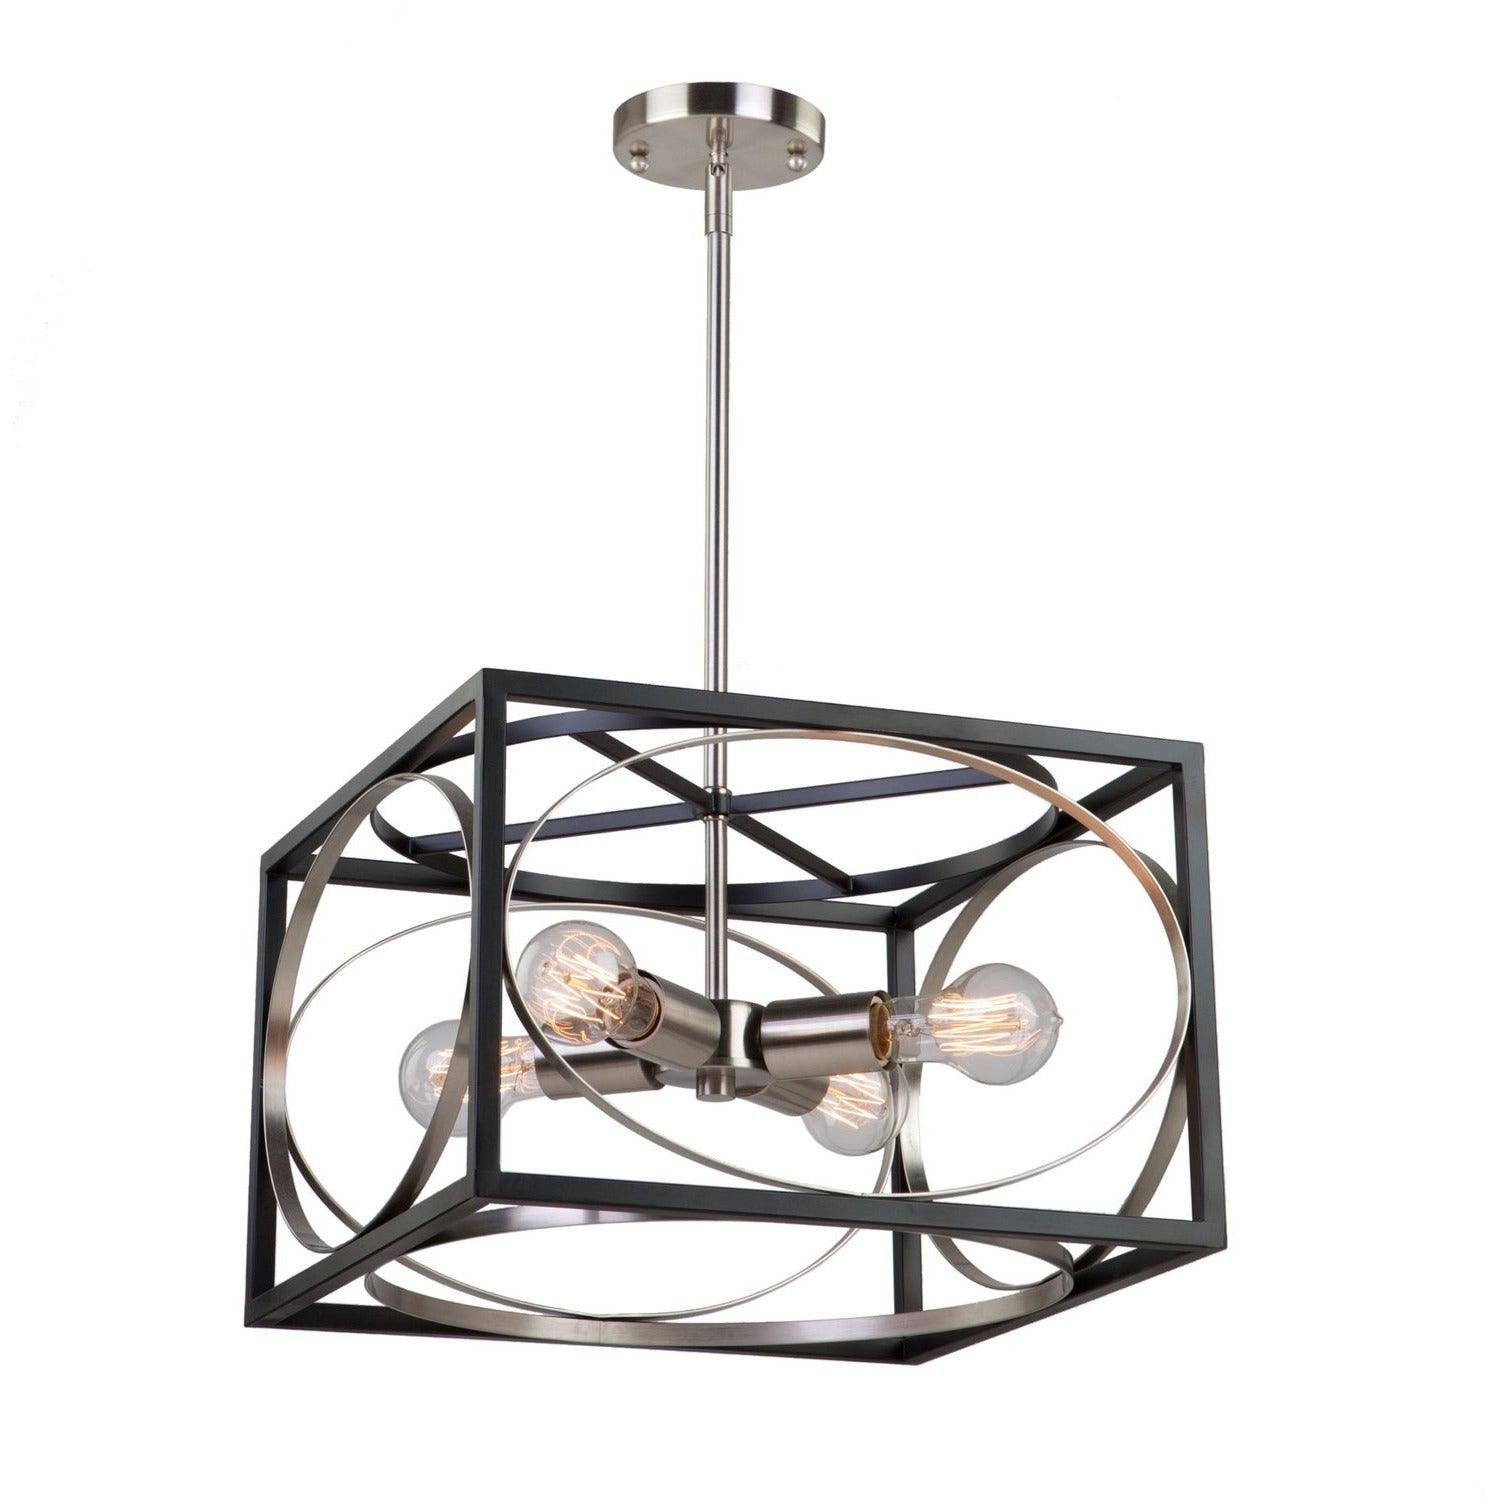 Artcraft Lighting - CL15094 - Four Light Chandelier - Corona - Black & Polished Nickel